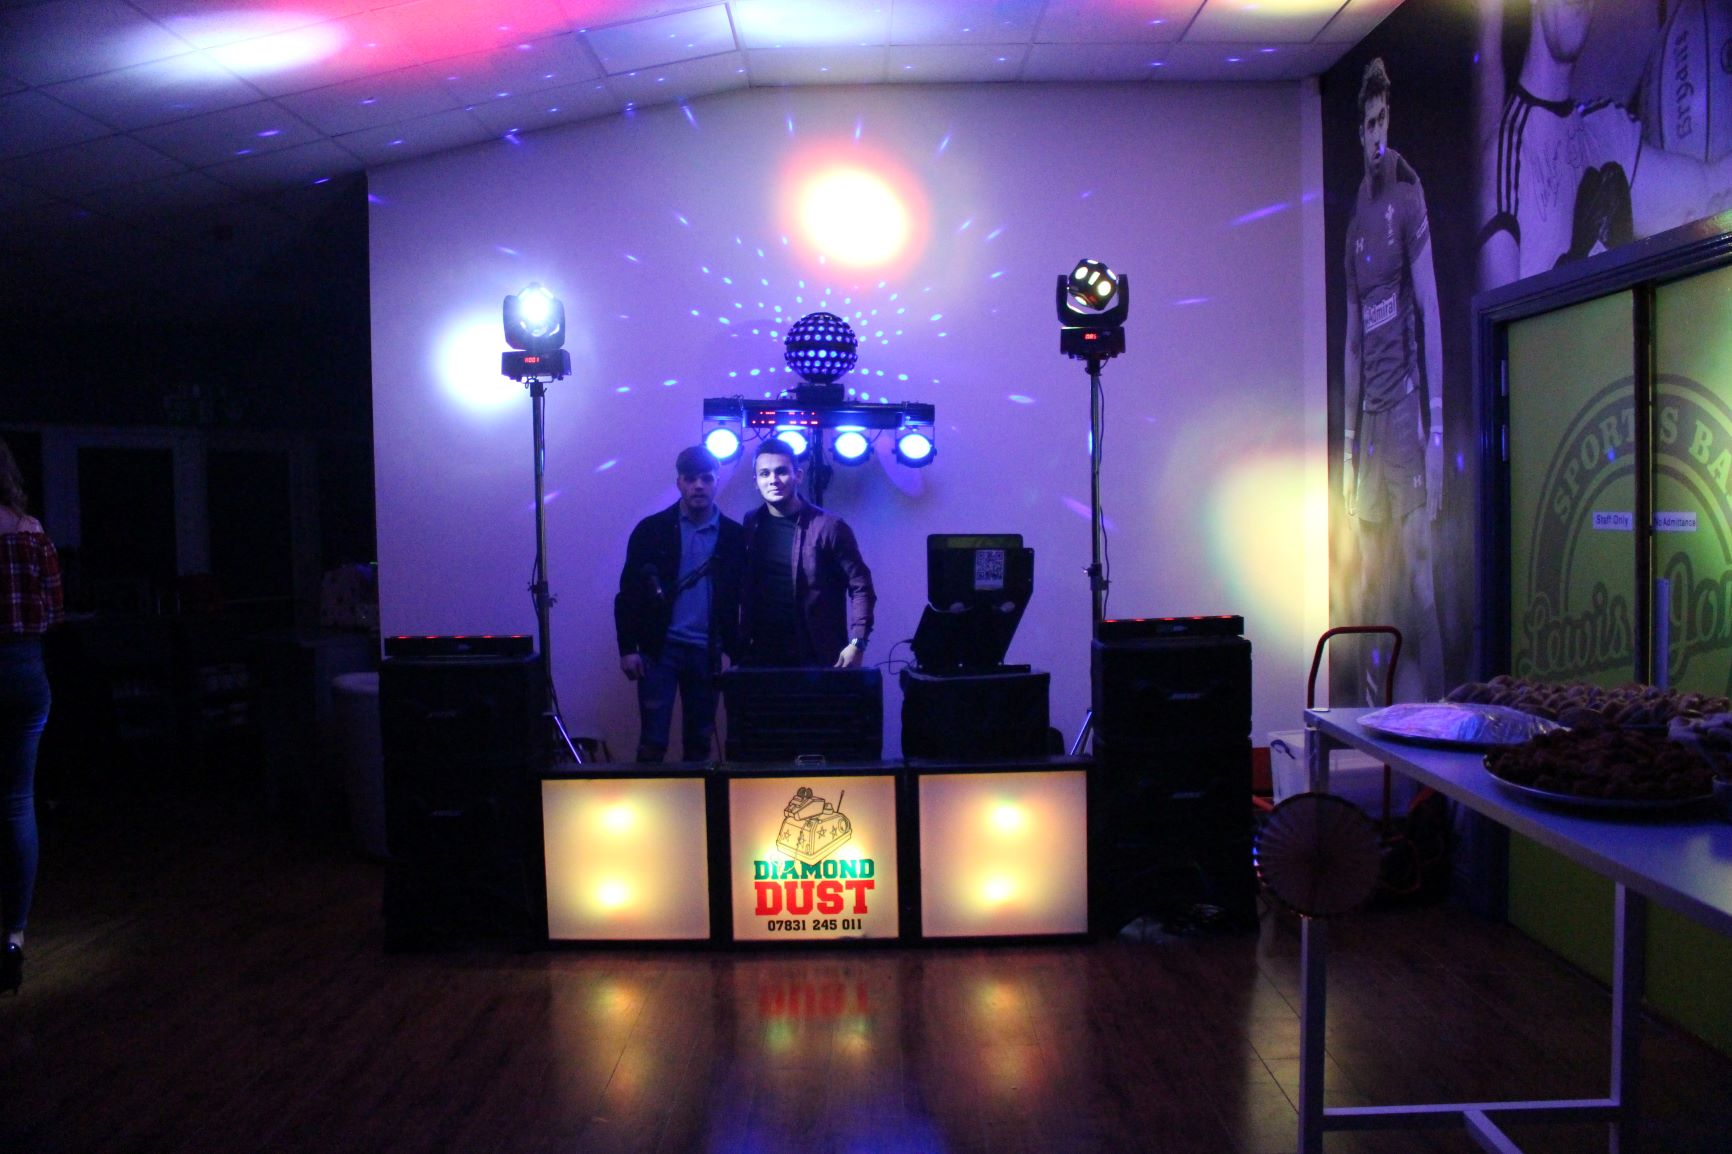 DJ Diamond Dust in Swansea with DJ Ethan Gray and DJ Tom Hyatt